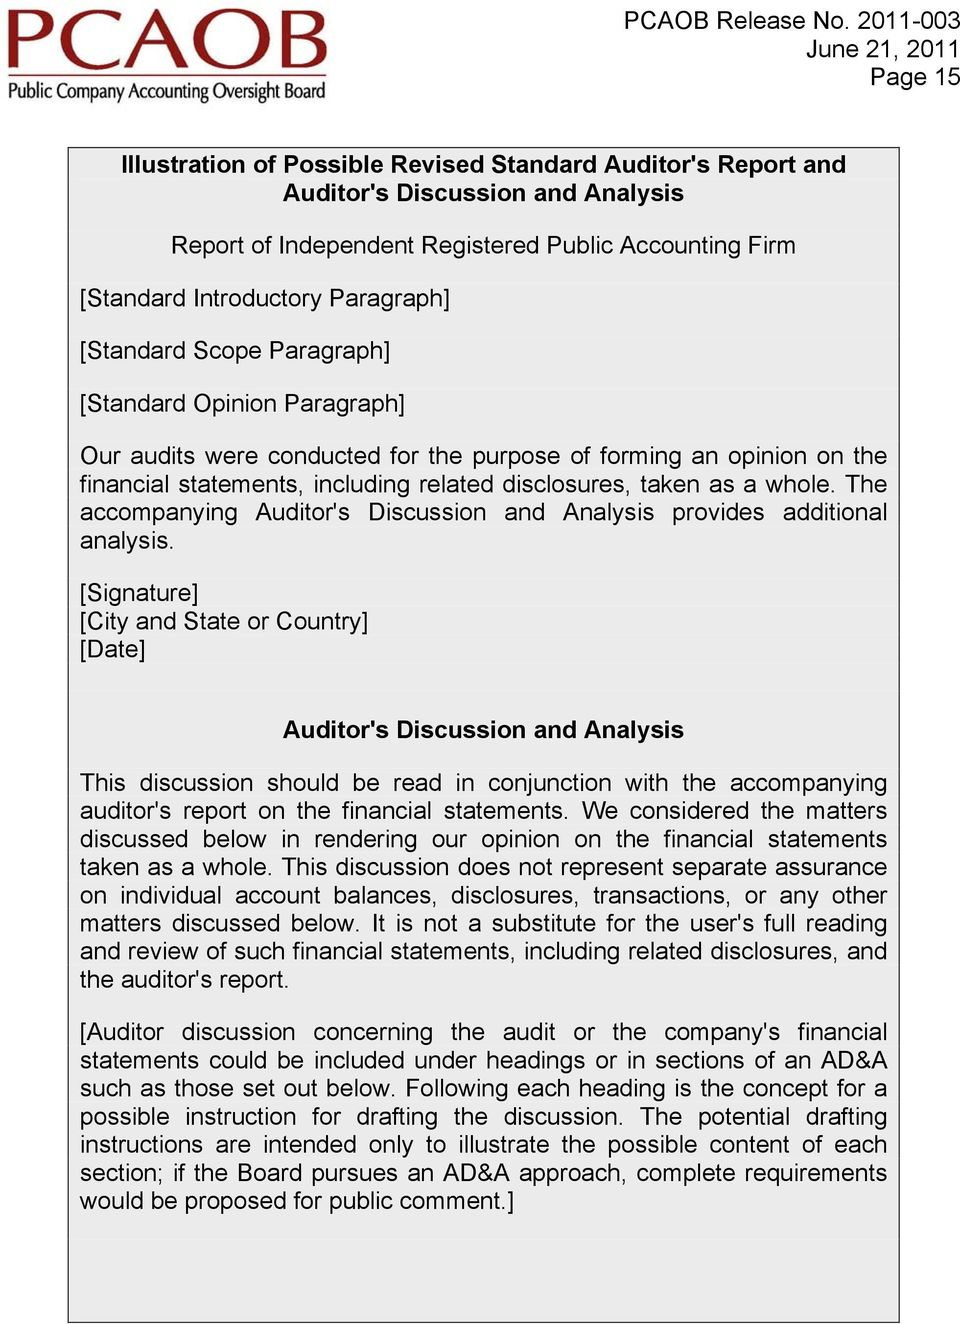 The accompanying Auditor's Discussion and Analysis provides additional analysis.